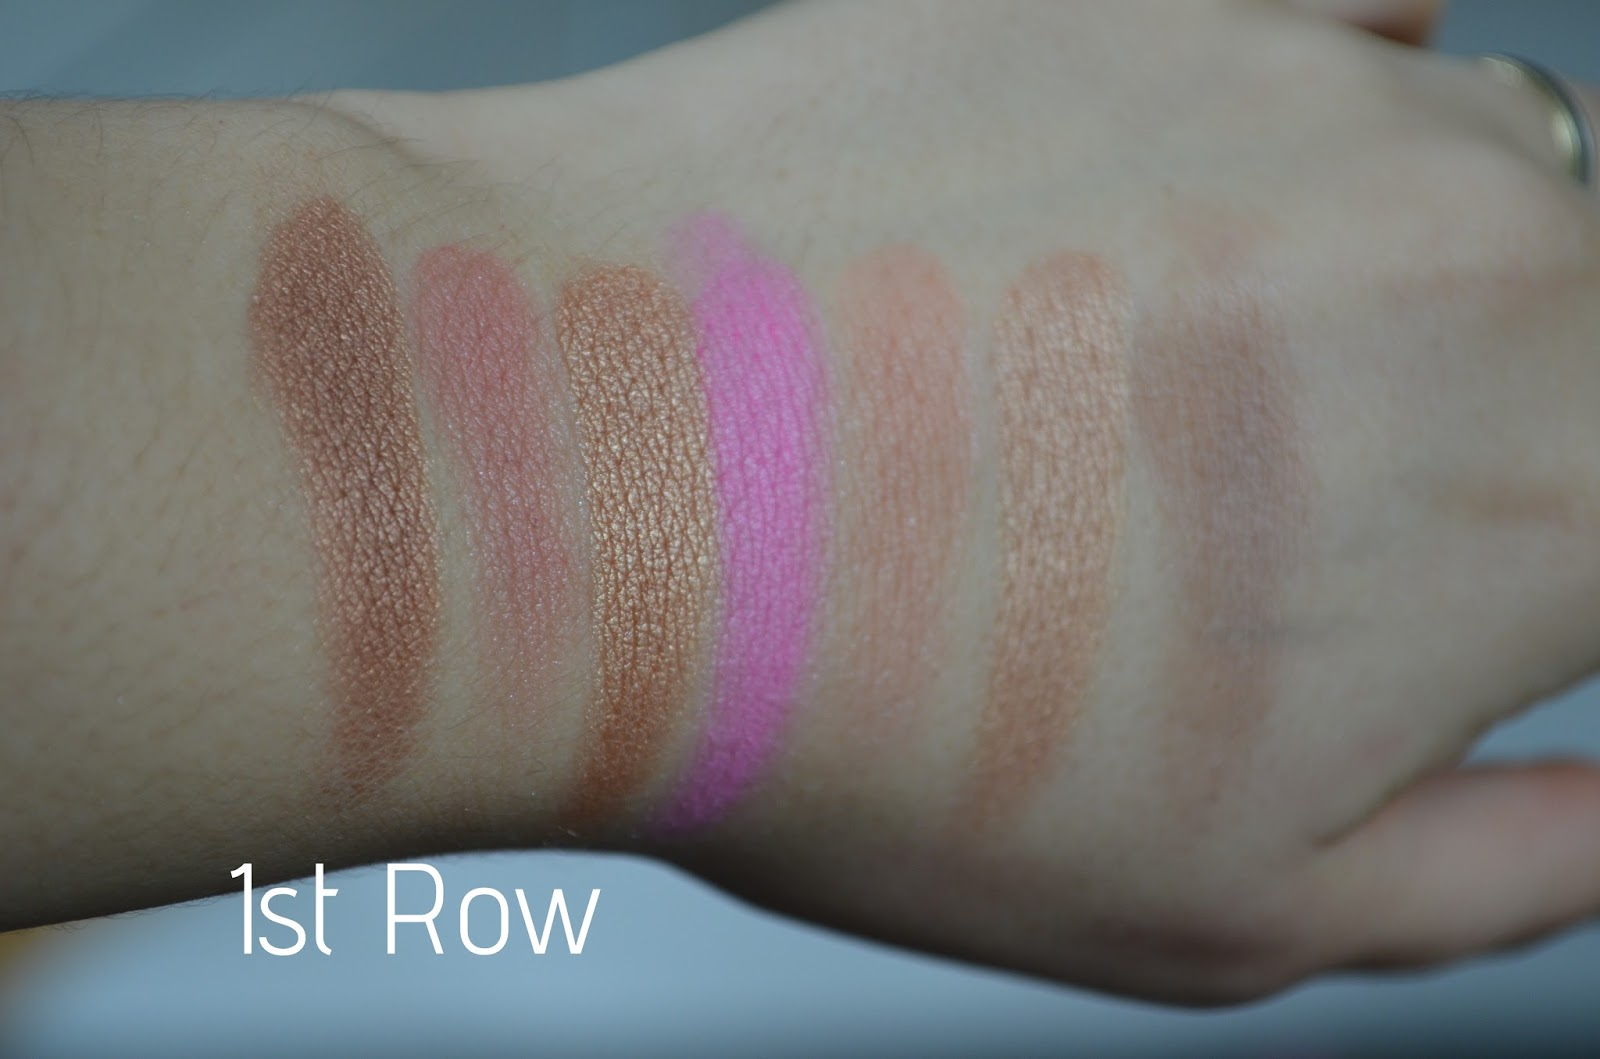 Classic Blush 10 Color Palette by BH Cosmetics #10